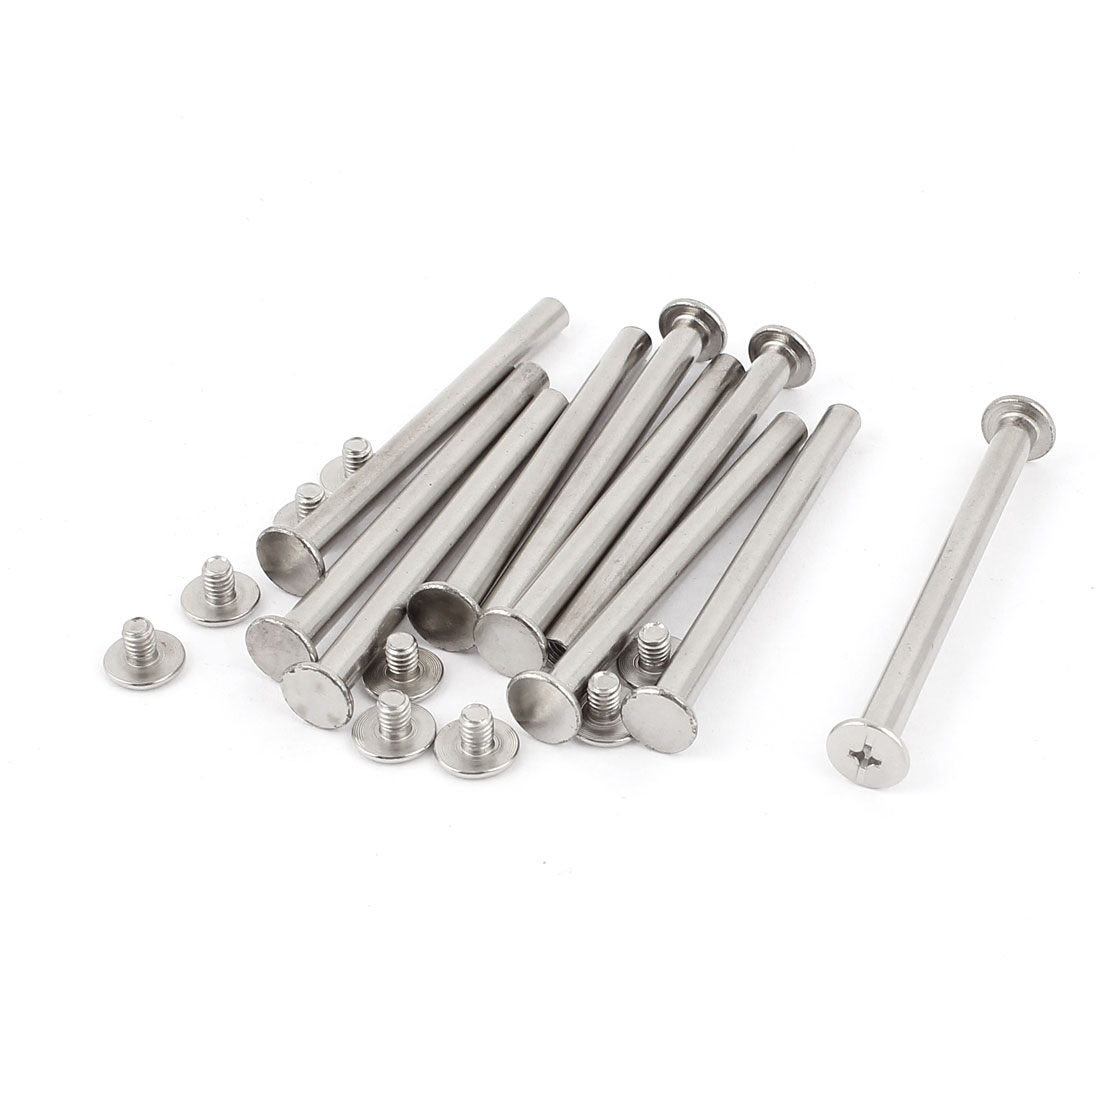 10Pcs M5x60mm Nickel Plated Binding Screw Post for Scrapbook Photo Albums